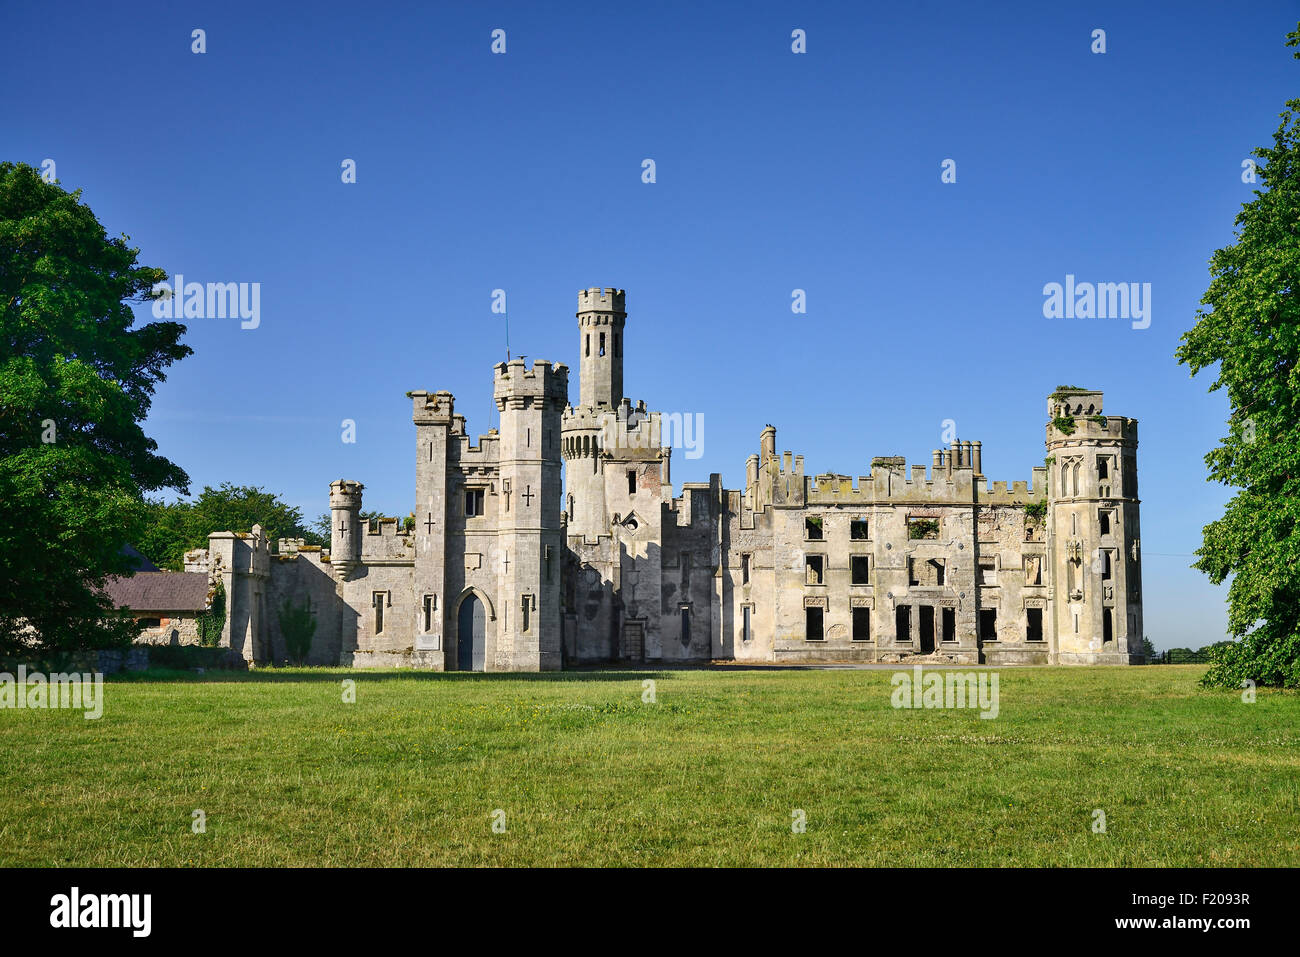 Ireland, County Carlow, Duckett's Grove, ruins of the 18th 19th and early 20th century home of the Duckett family. - Stock Image